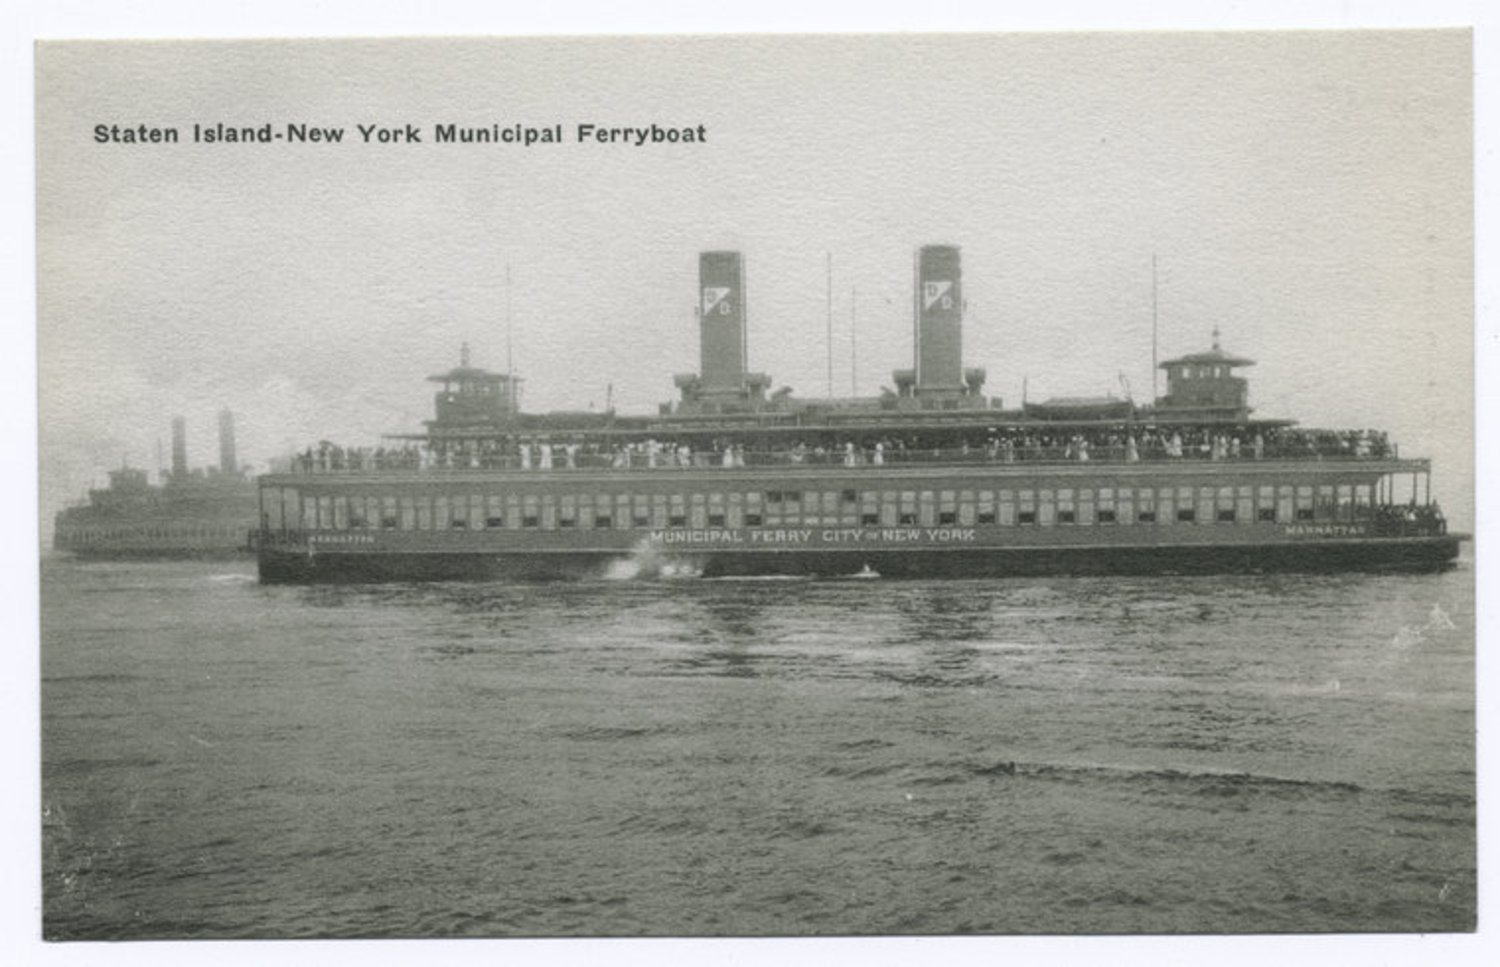 Staten Island-New York municipal ferryboat.